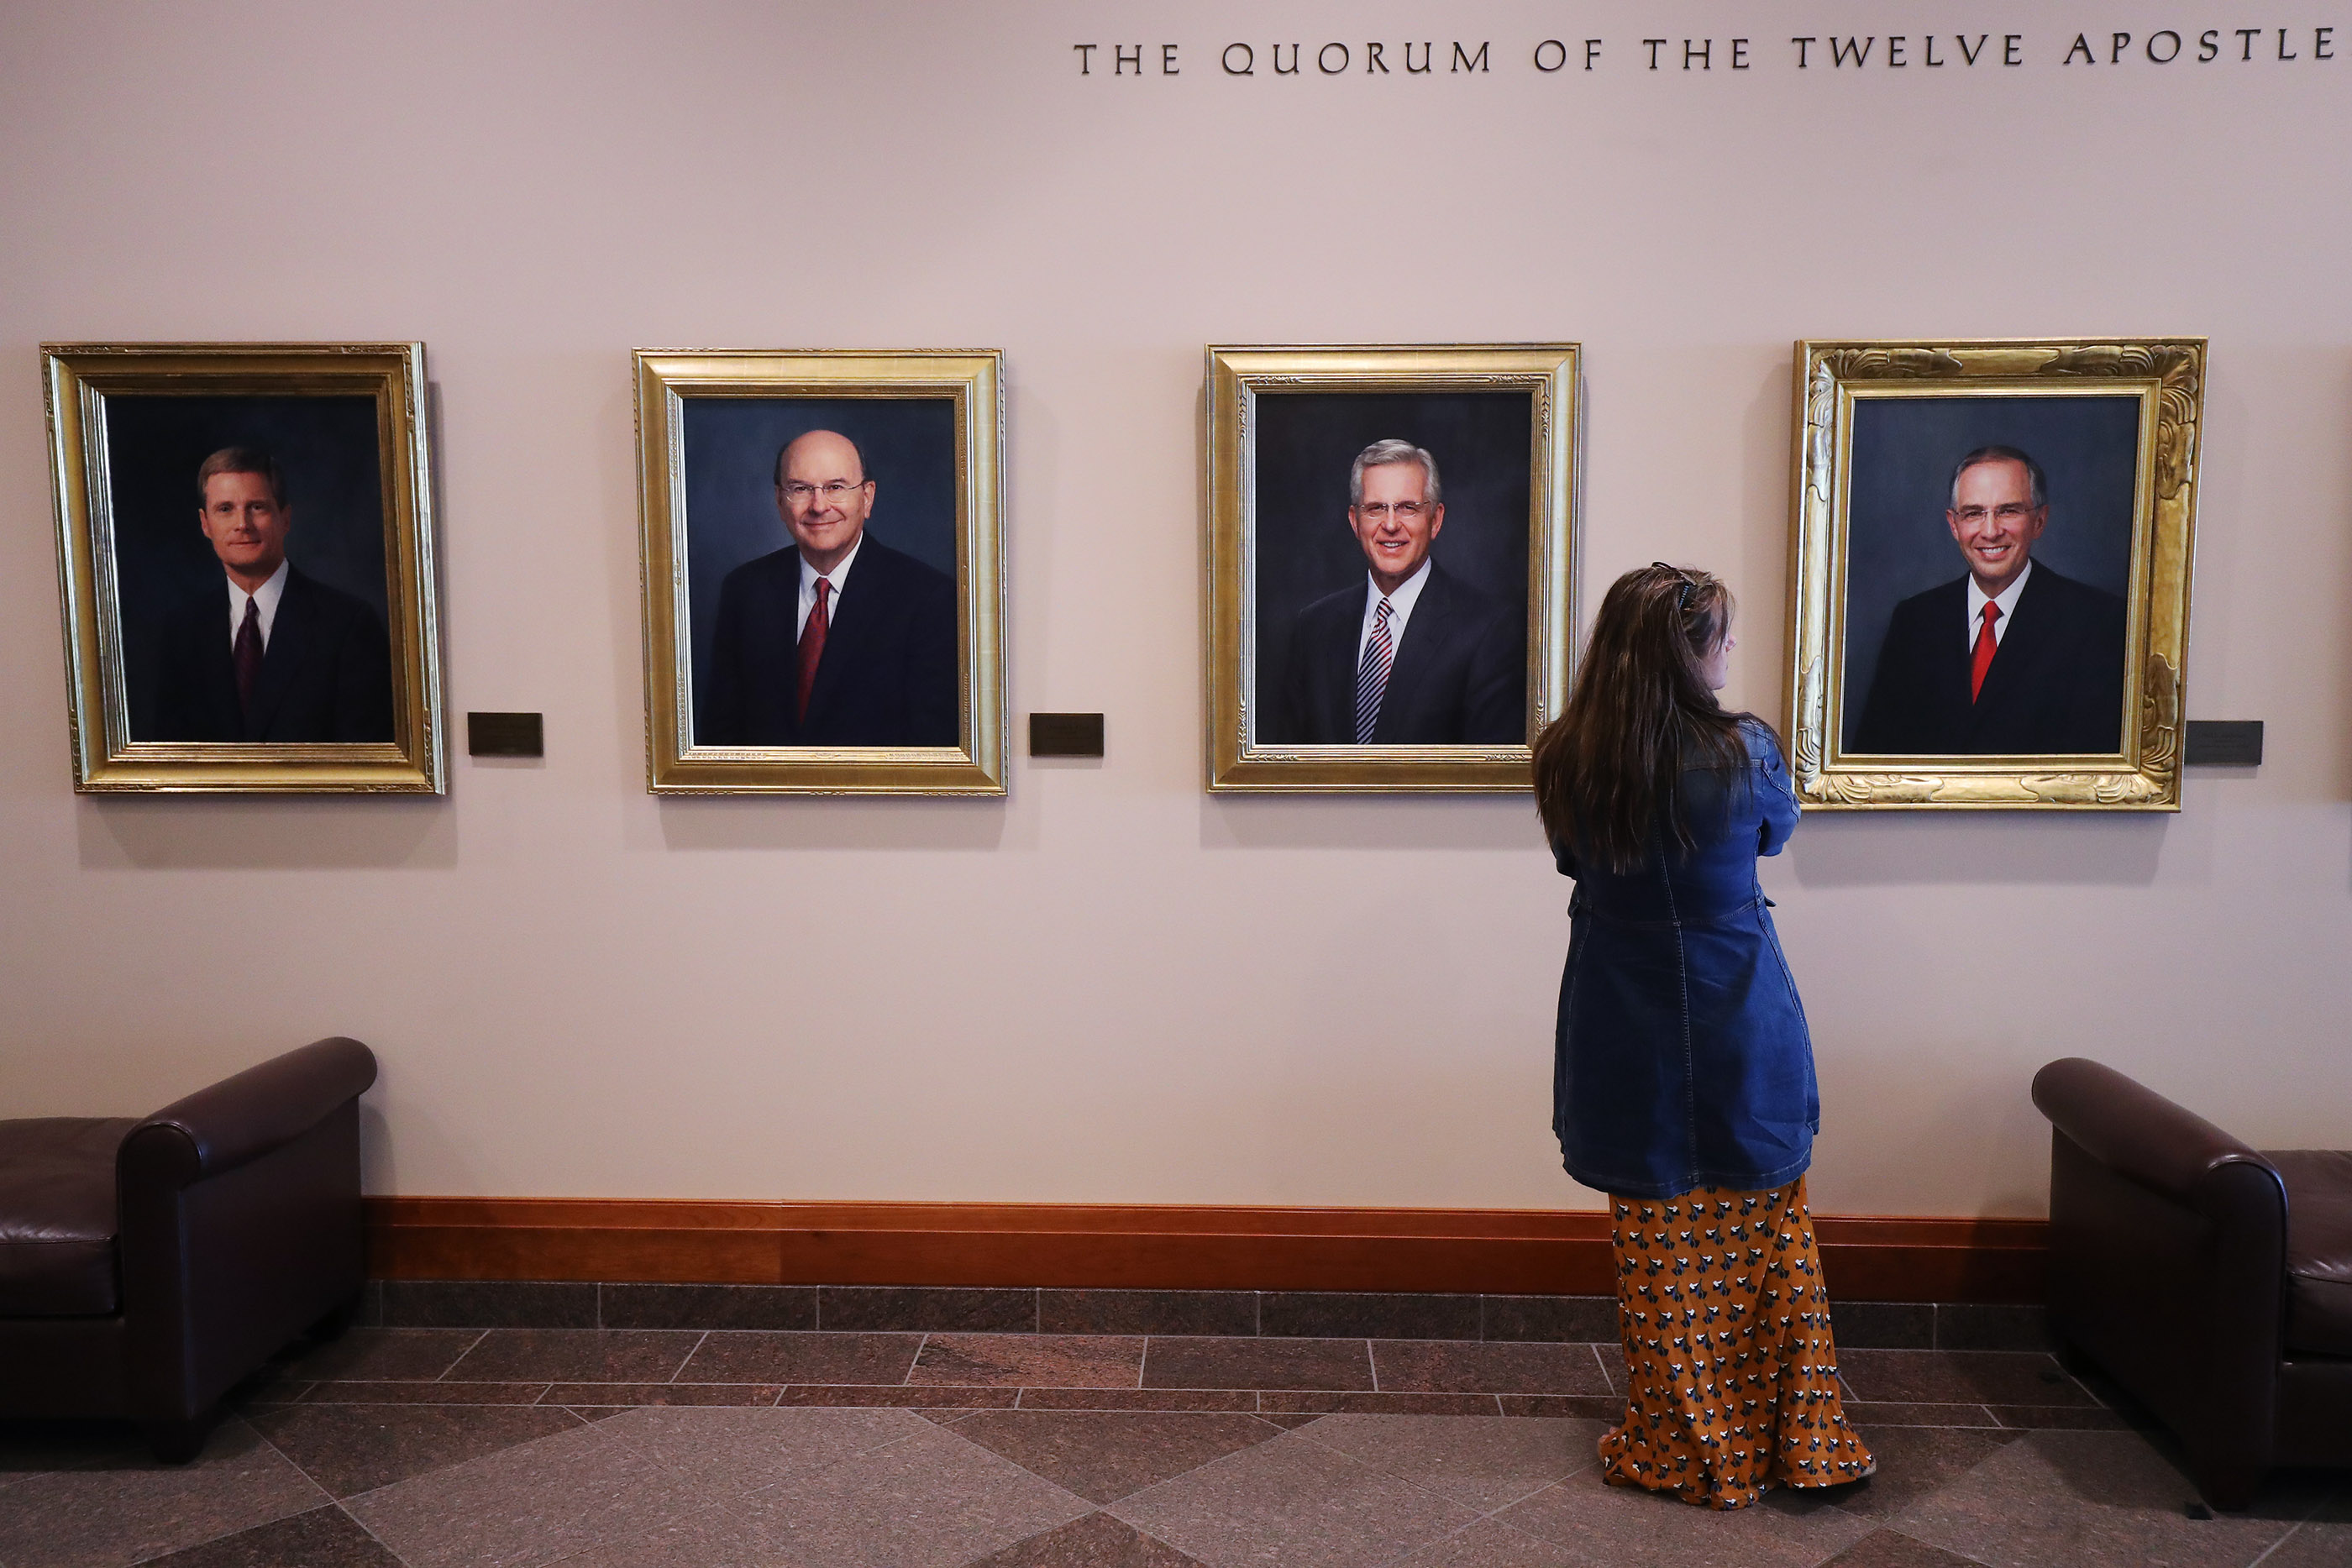 A conference attendee looks over portraits of the Quorum of the Twelve Apostles during the 188th Semiannual General Conference of The Church of Jesus Christ of Latter-day Saints in Salt Lake City on Sunday, Oct. 7, 2018.